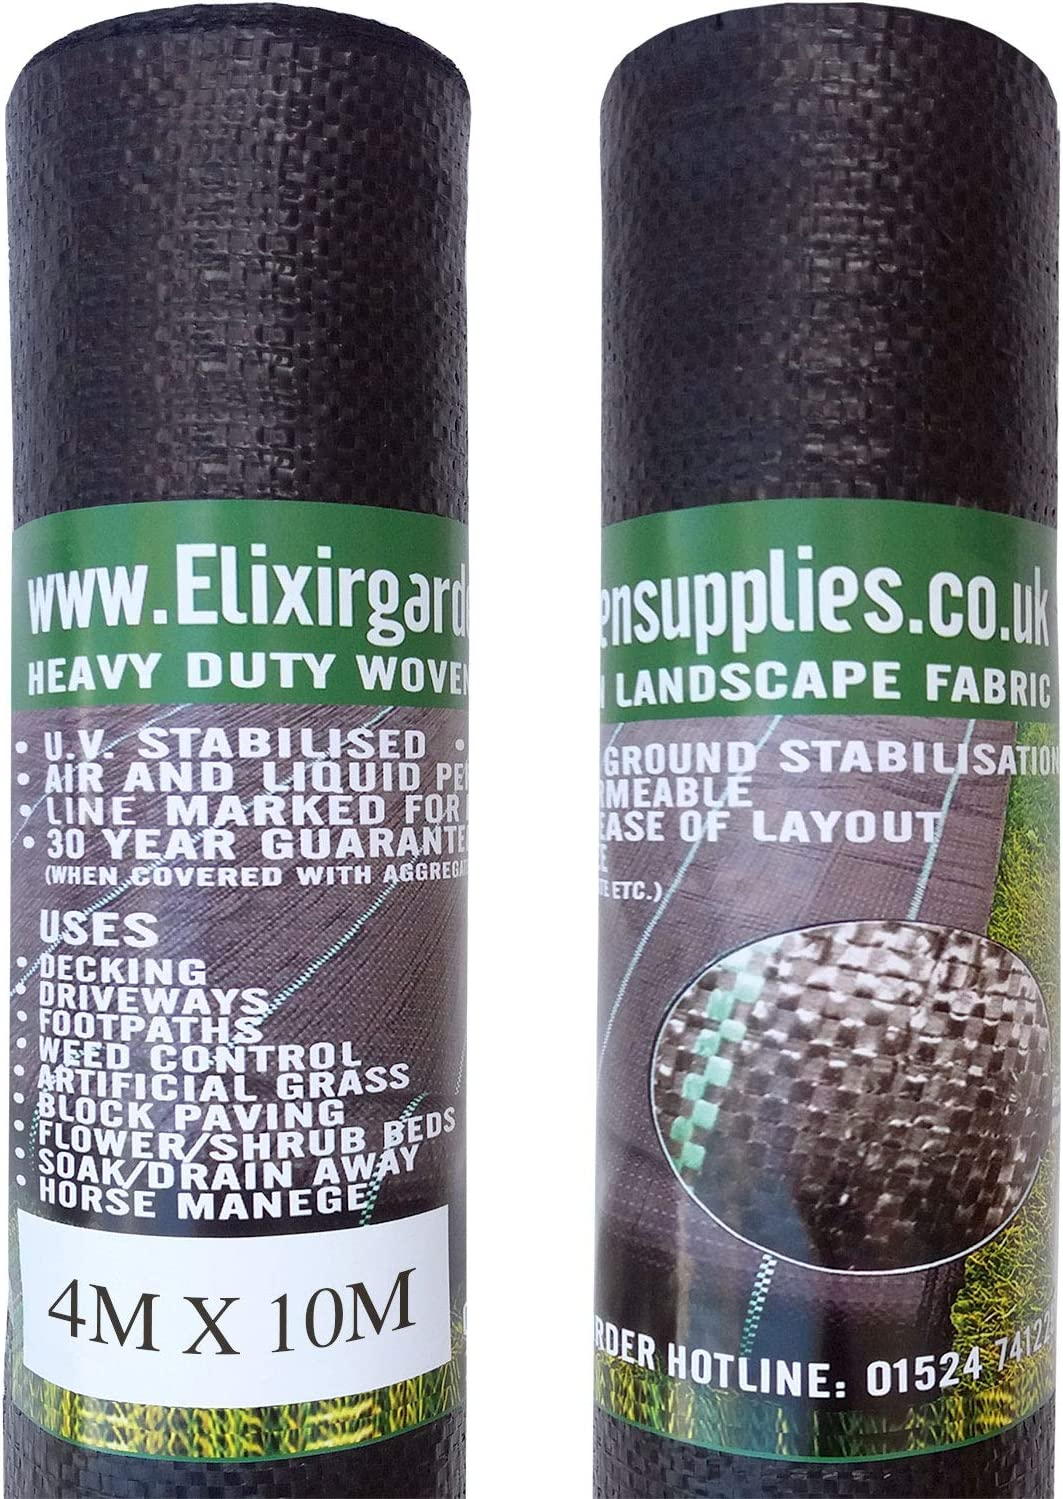 Elixir Gardens 4m x 25m Woven Weed Control Landscape Fabric